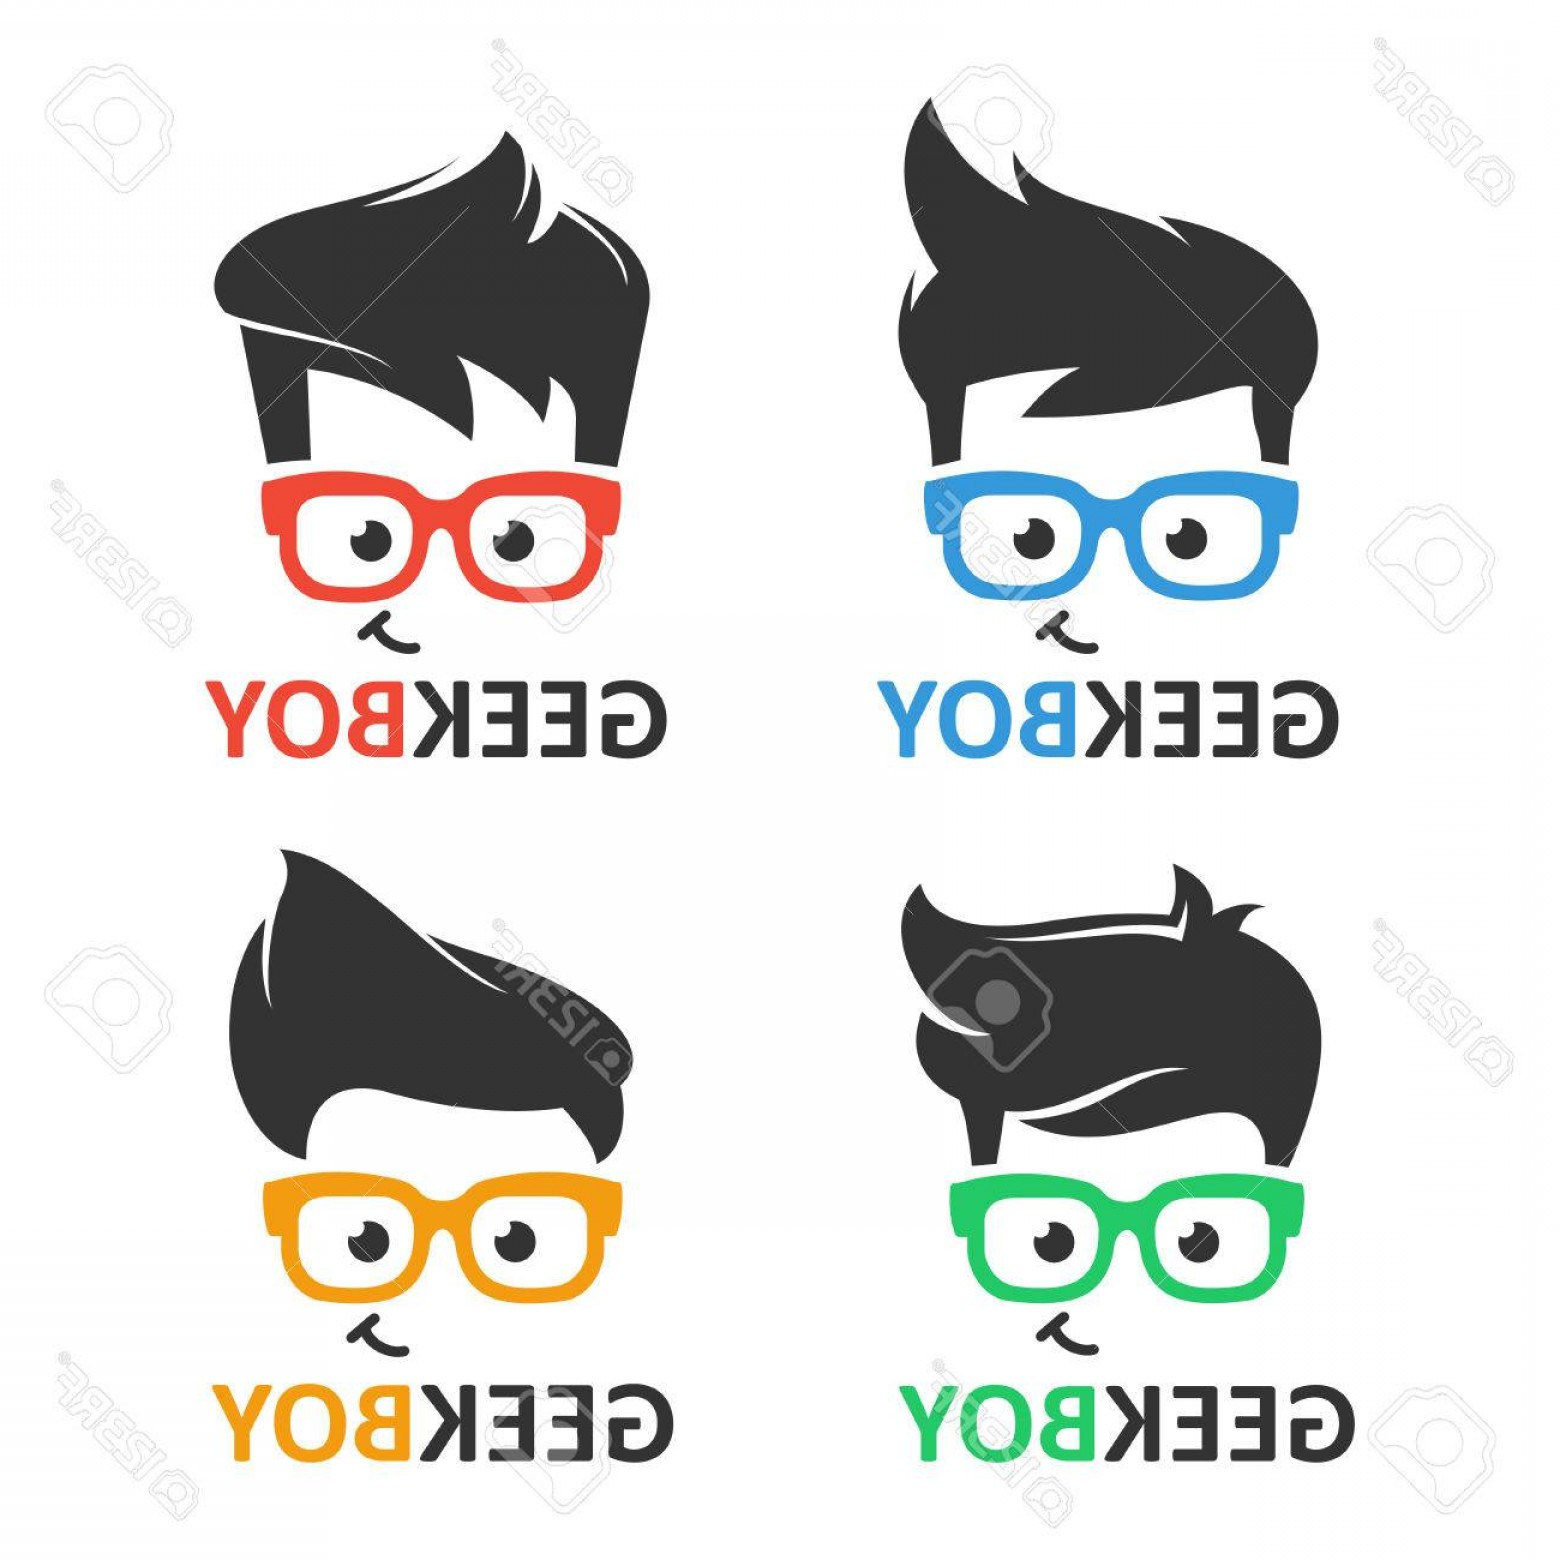 Nerd Vector: Photostock Vector Geek Or Nerd Logo Vector Set Cartoon Face Smart Boy With Glasses Icons For Education Gaming Technolo